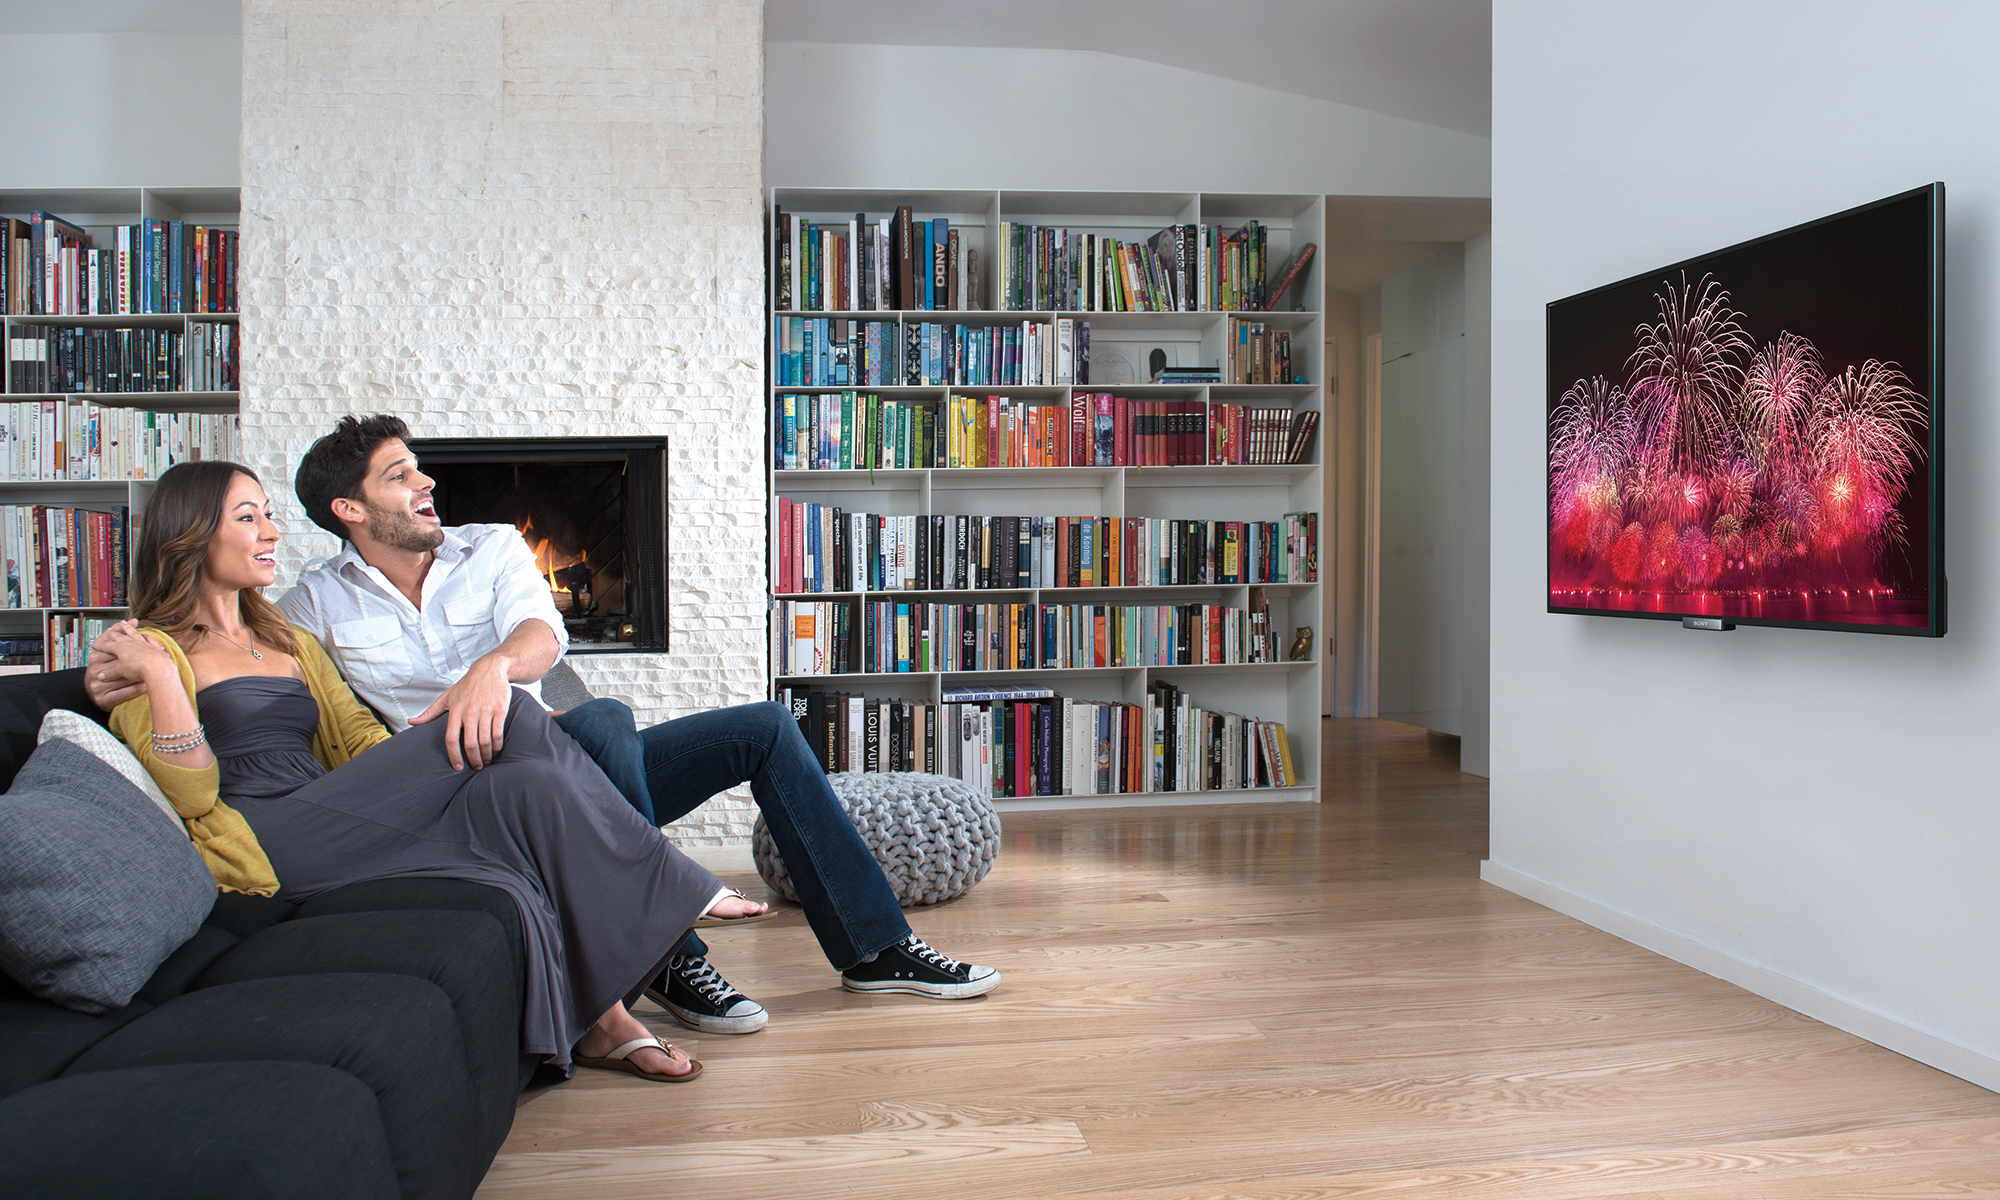 LOOKING TO BUY A NEW TV? EXPERT TIPS ON WHAT TO LOOK FOR WHEN BUYING THIS NEW YEAR SEASON